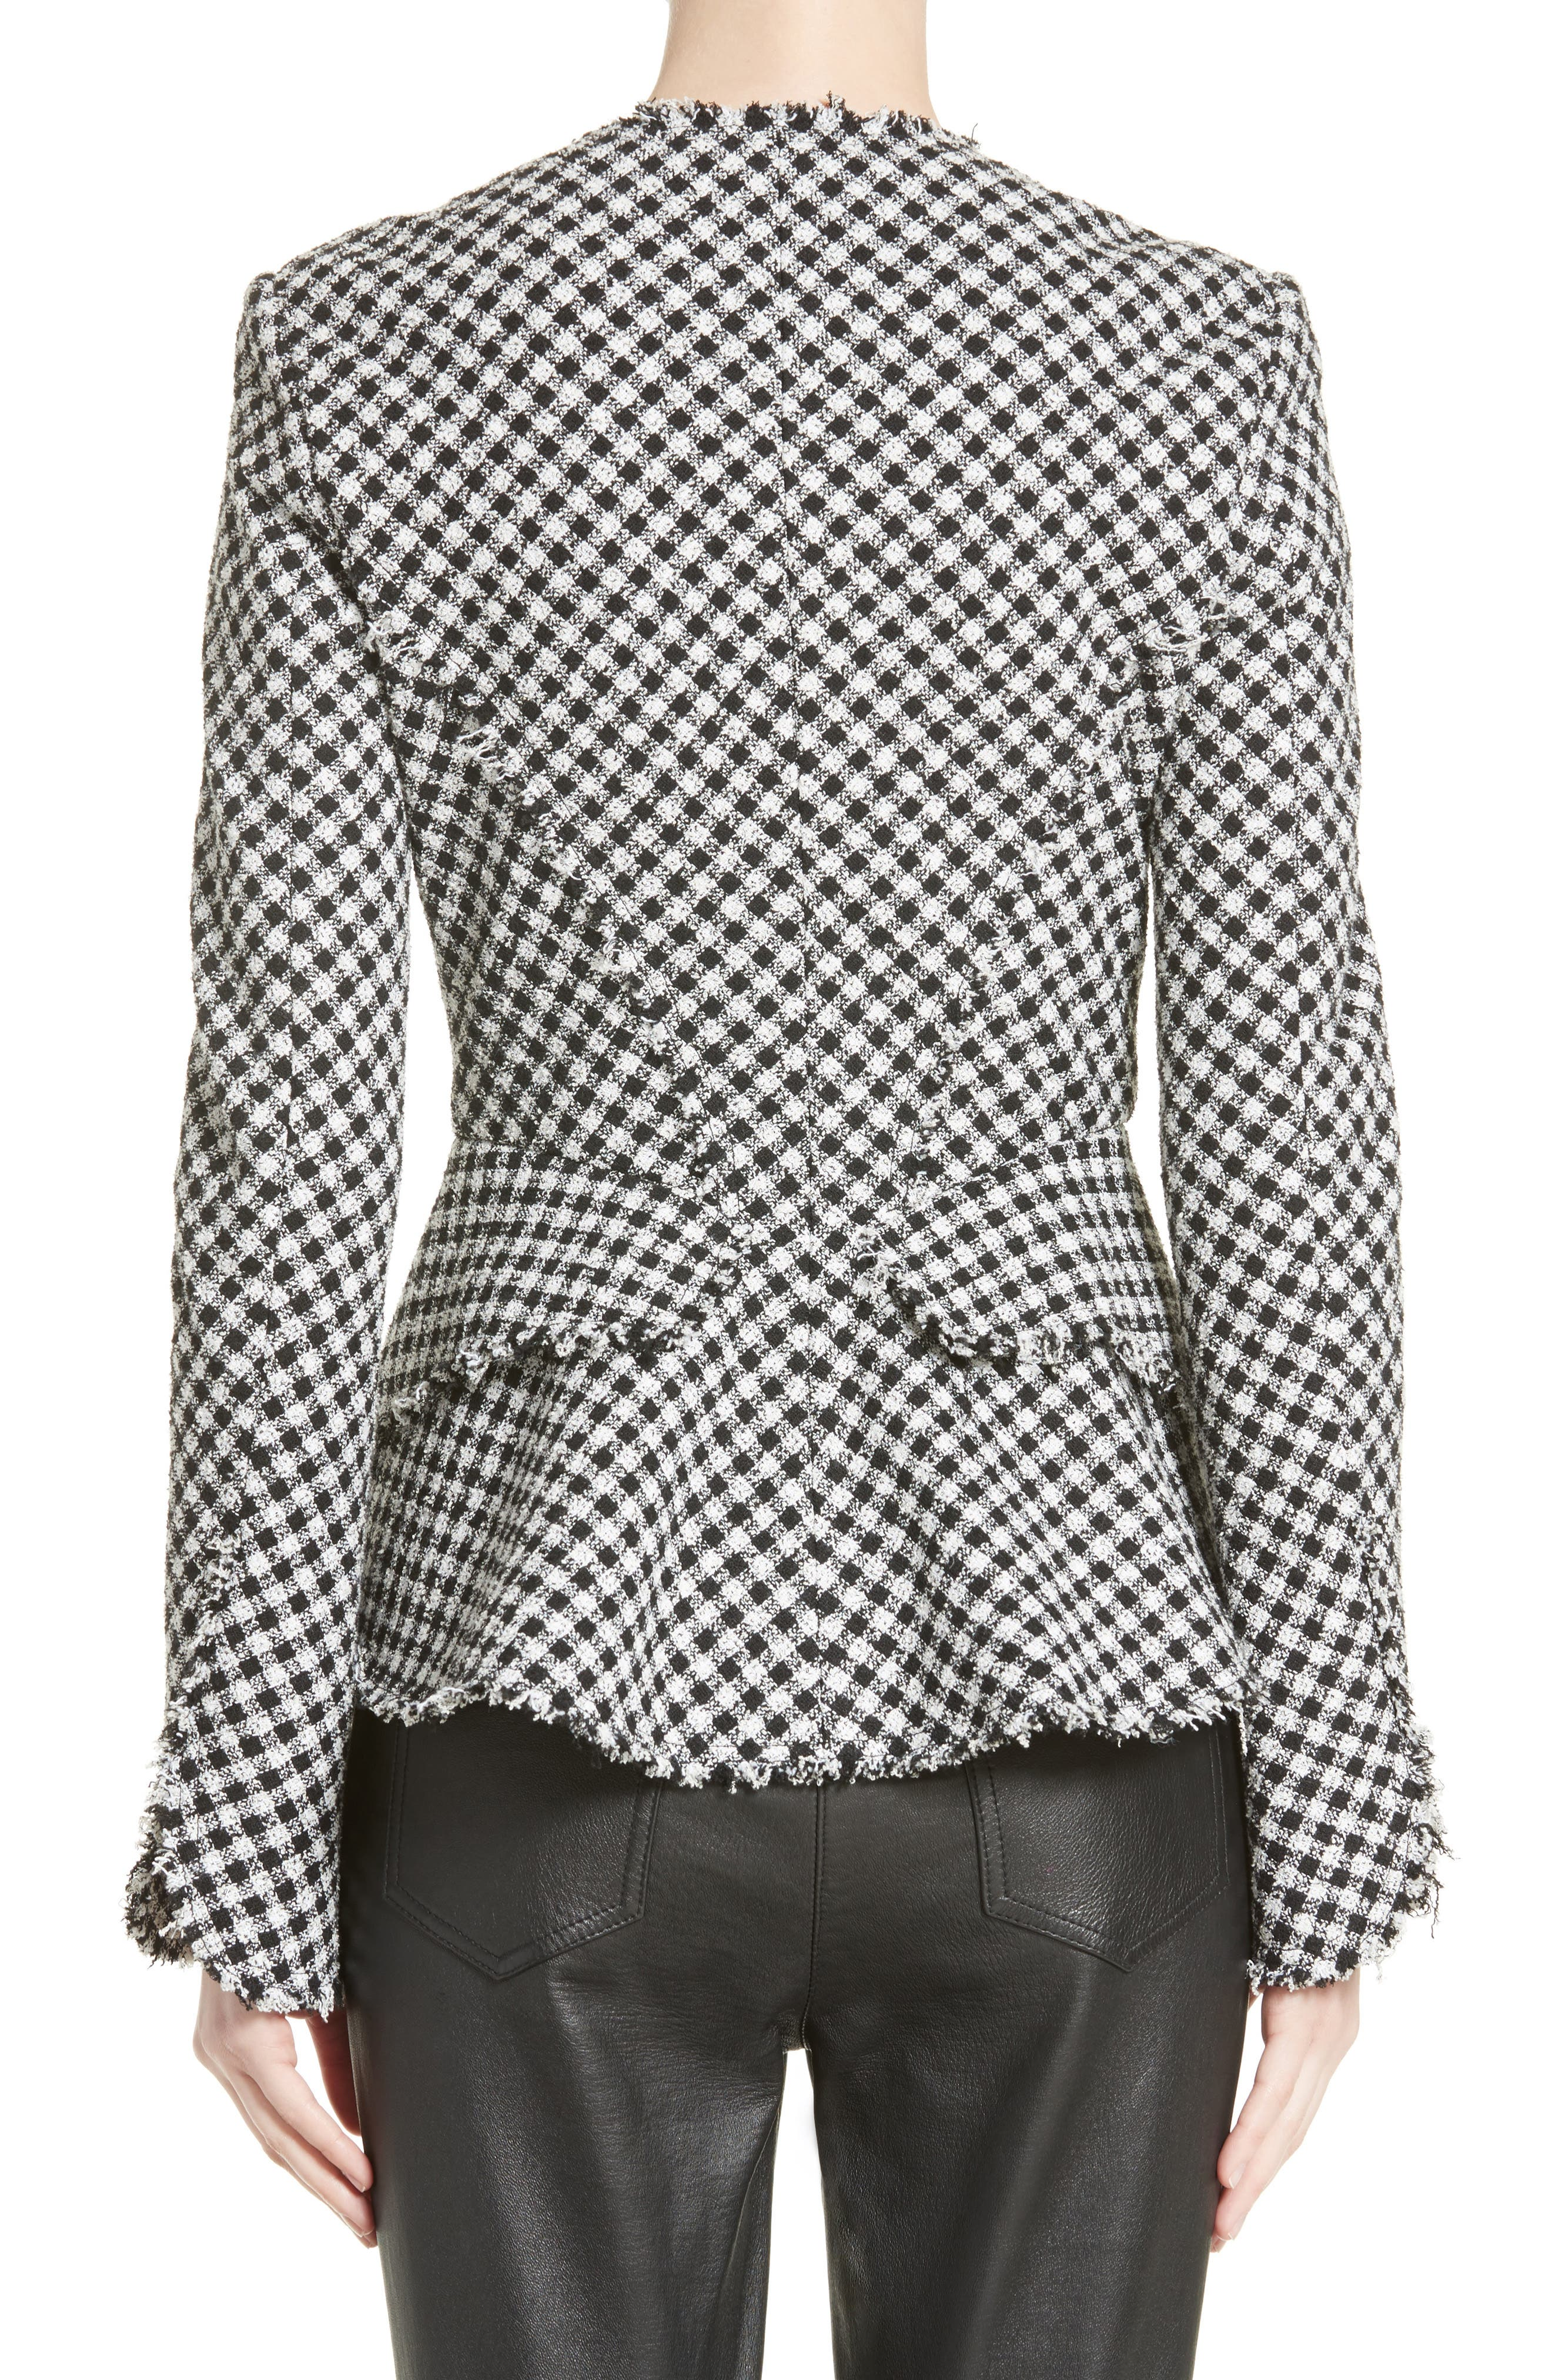 Alternate Image 2  - Alexander Wang Check Tweed Peplum Jacket